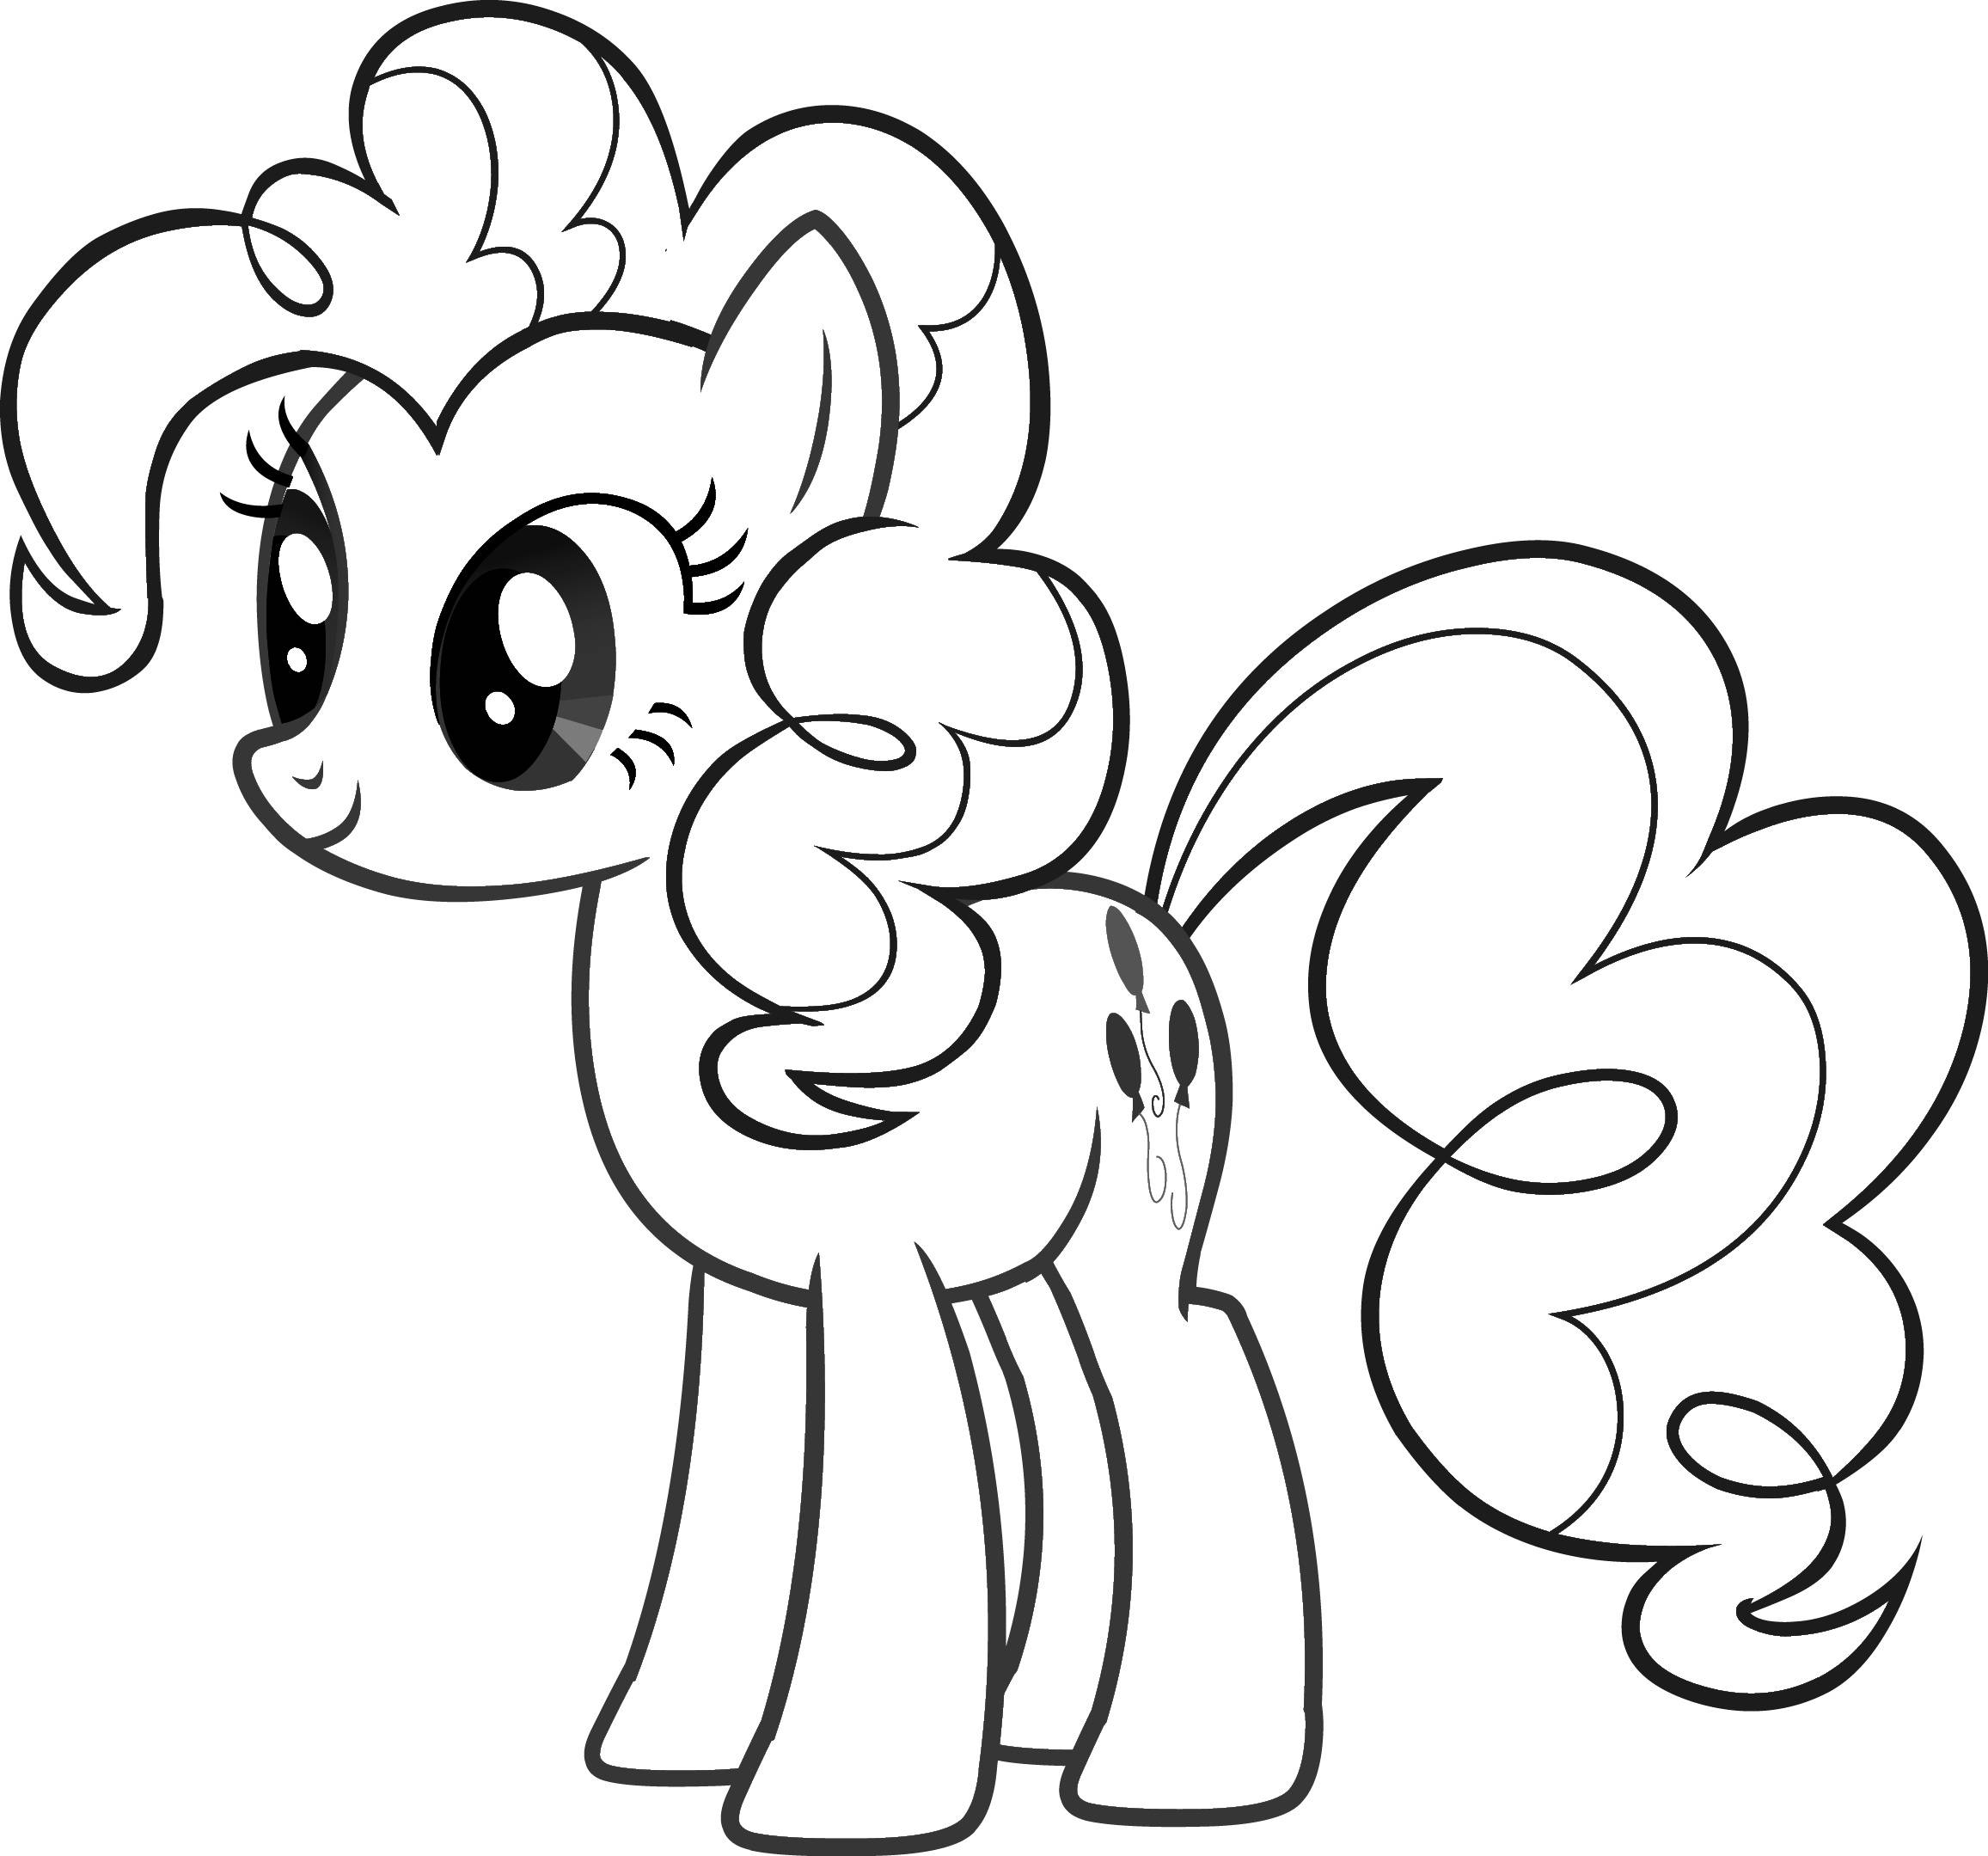 55 Dessins De Coloriage My Little Pony à Imprimer